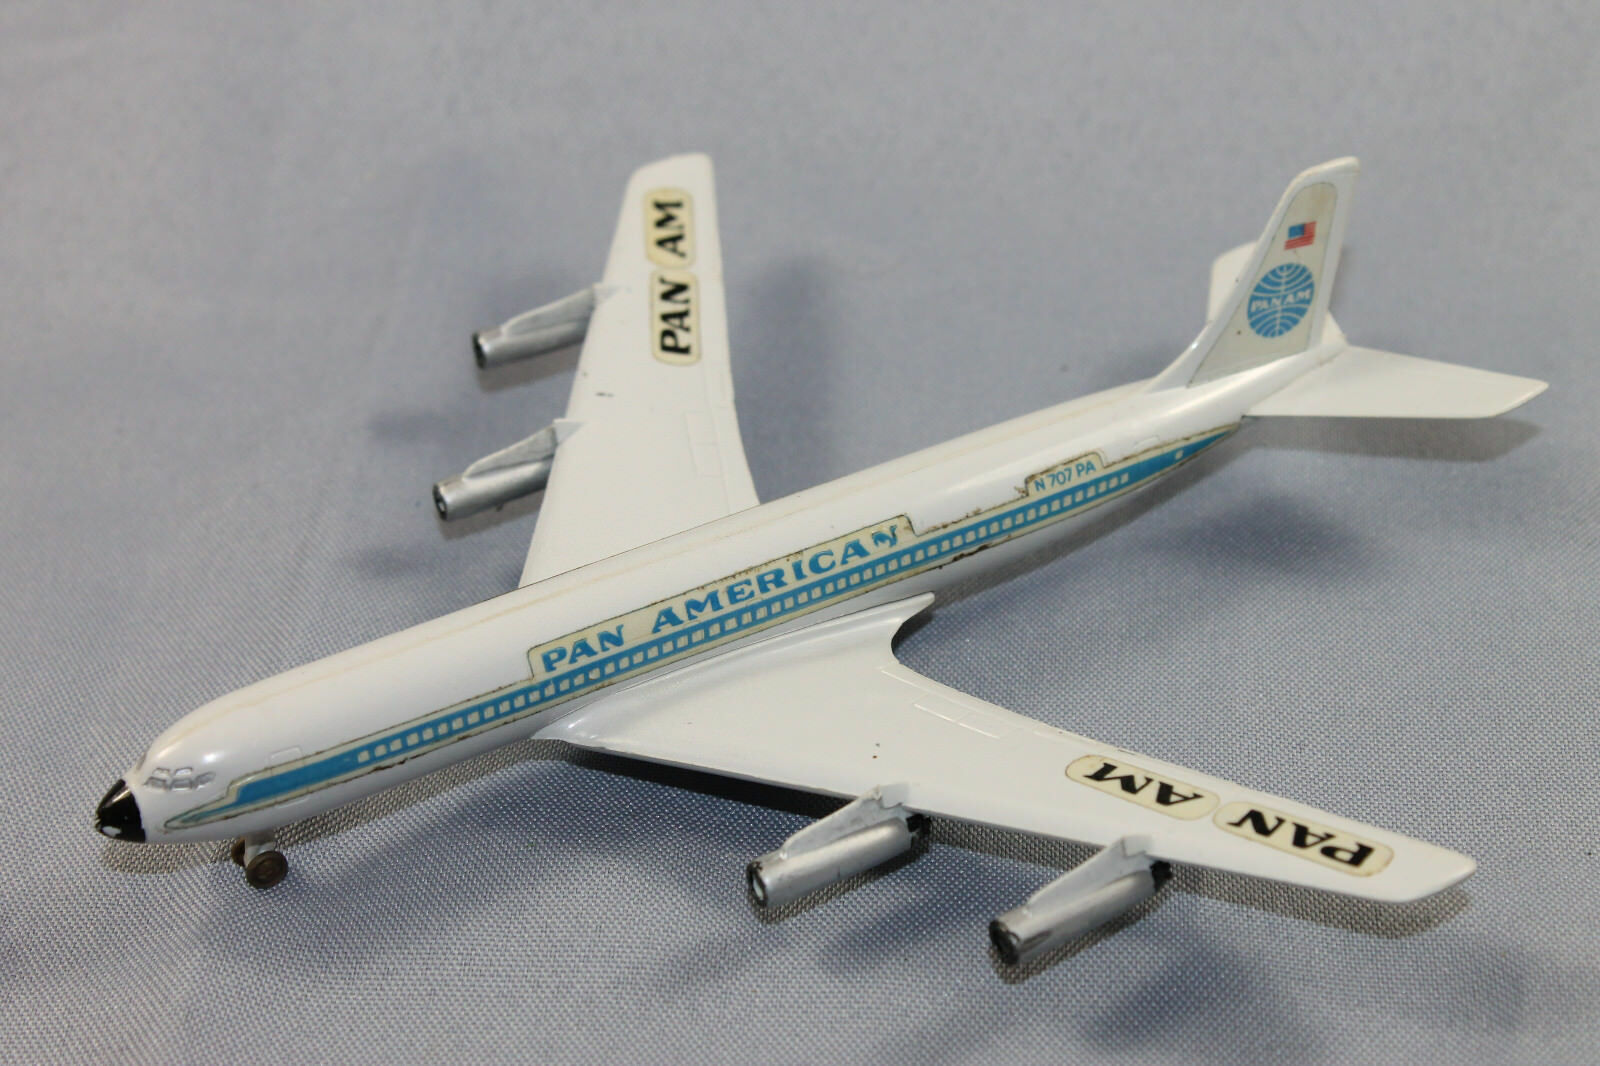 Siku plastique f3 Boeing 707  INTERCONTINENTAL  PAN AMERICAN AVION modèle 1 250